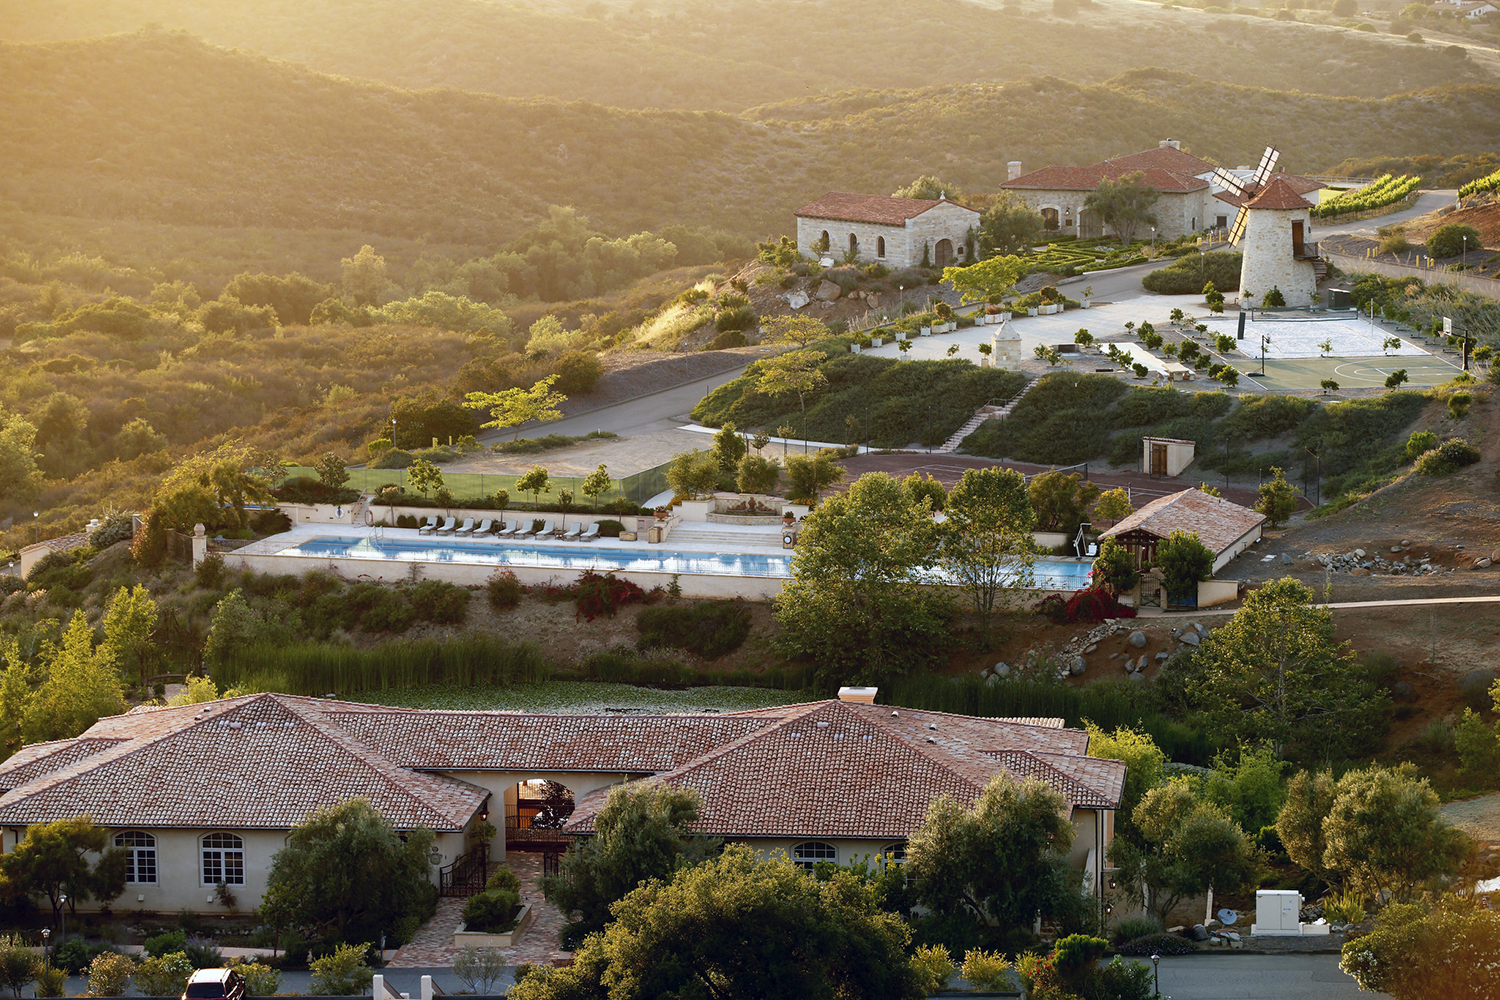 Cal-a-Vie Health Spa resembles a French village and is nestled within 500 private acres in northern San Diego County.